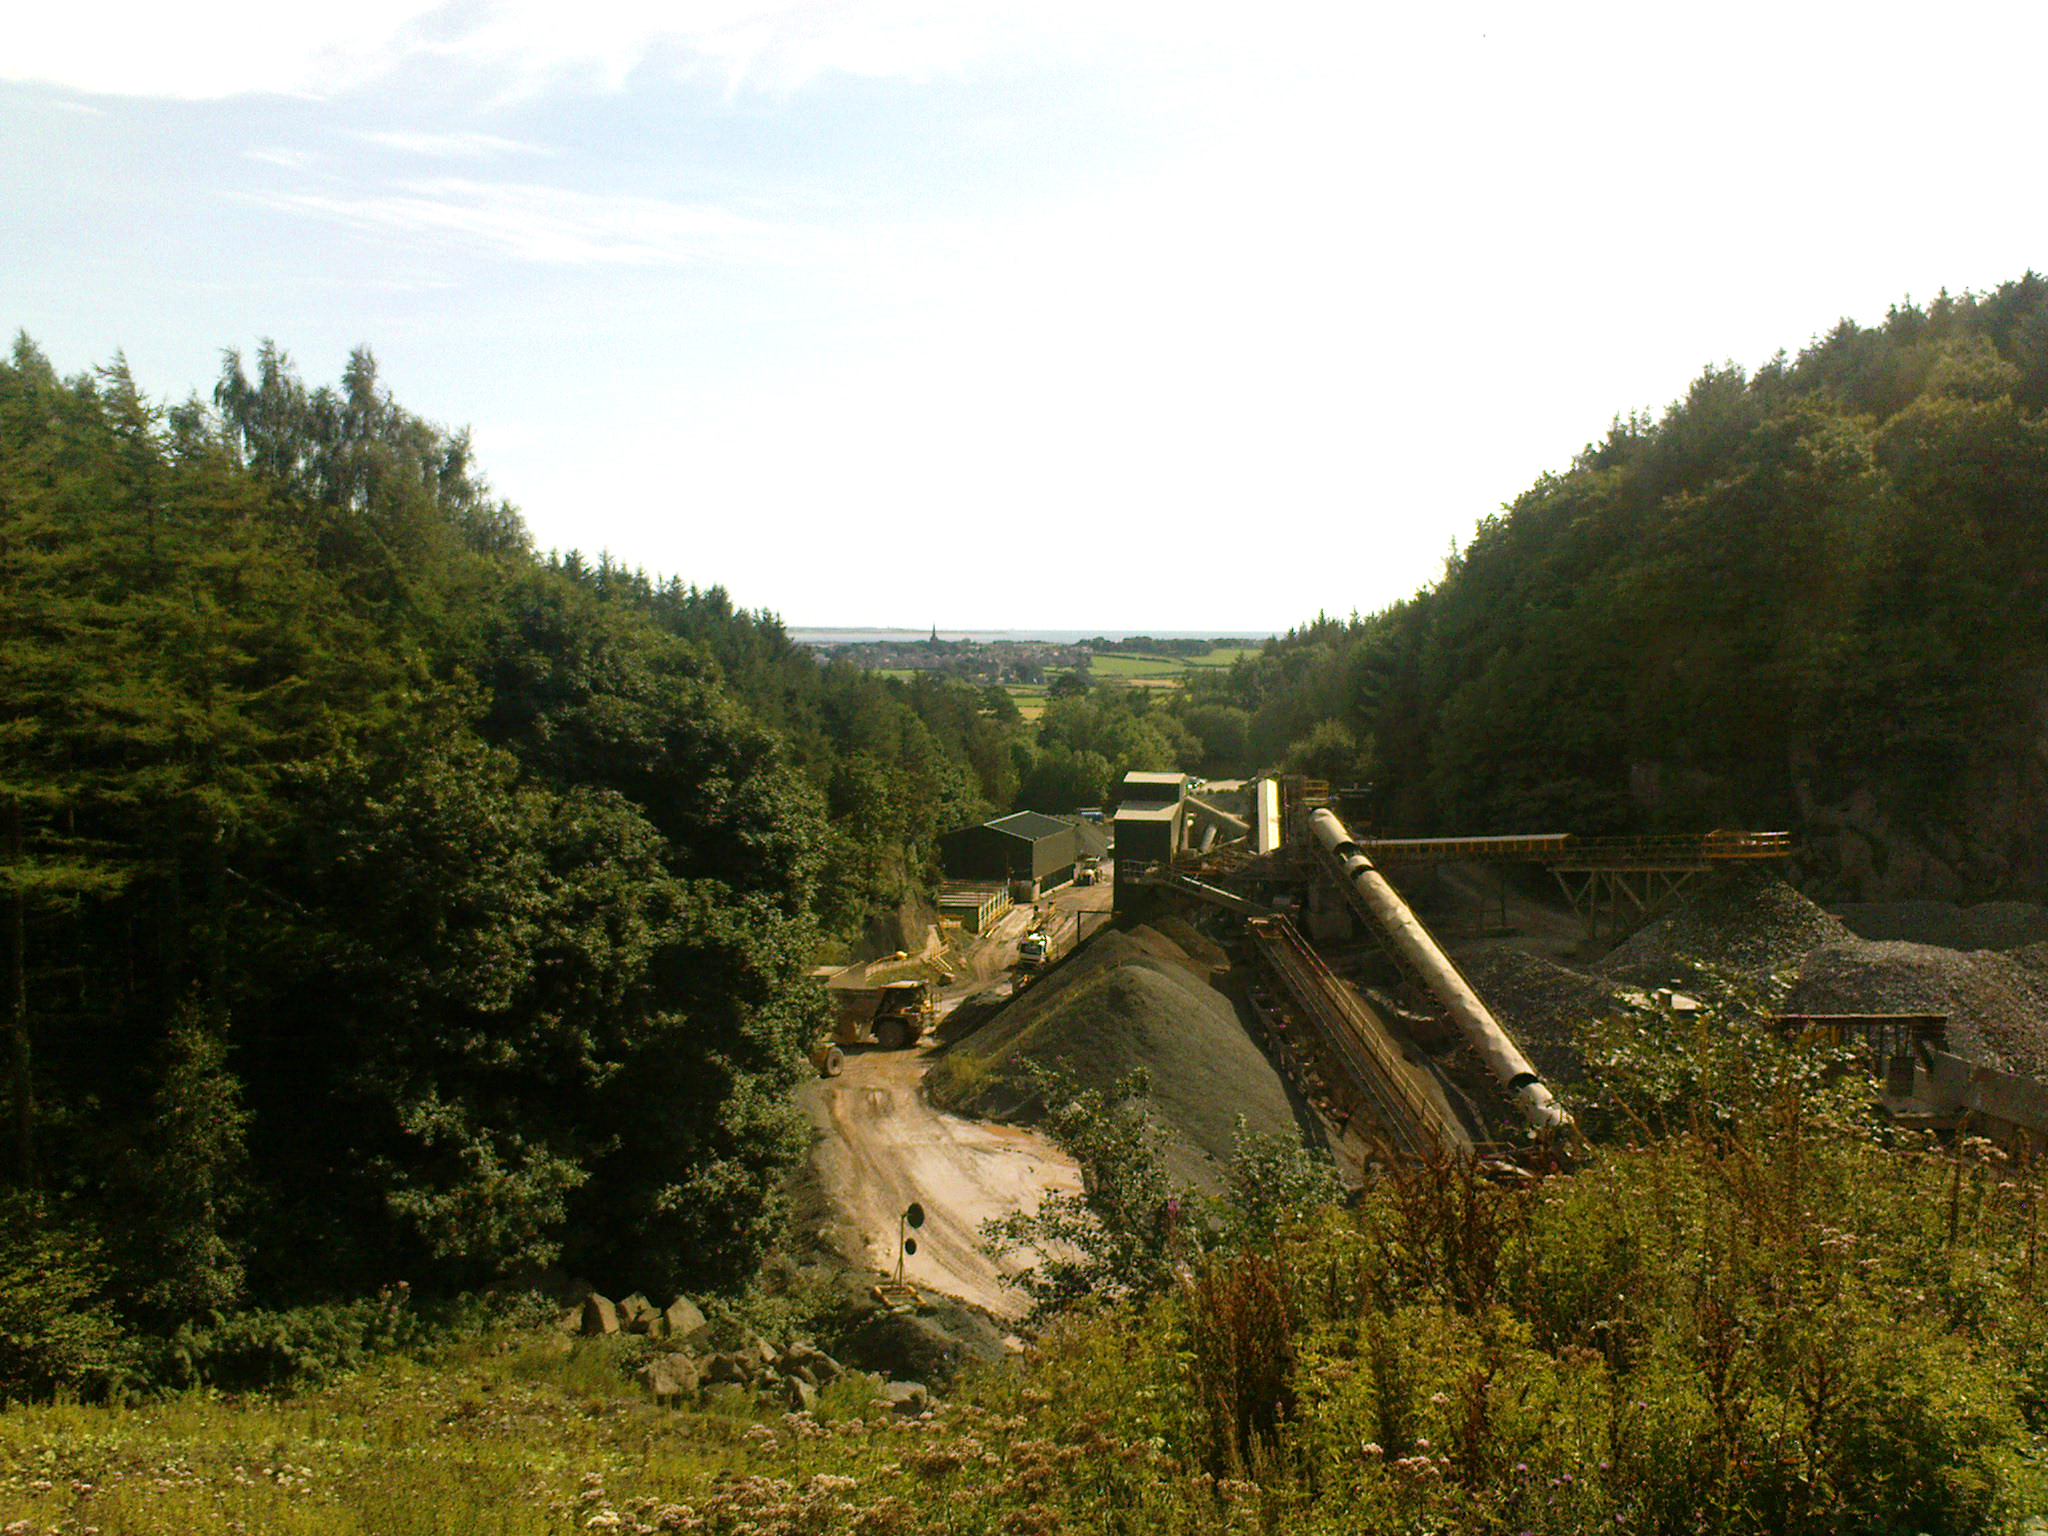 Looking down on Ghyll Scaur Quarry works